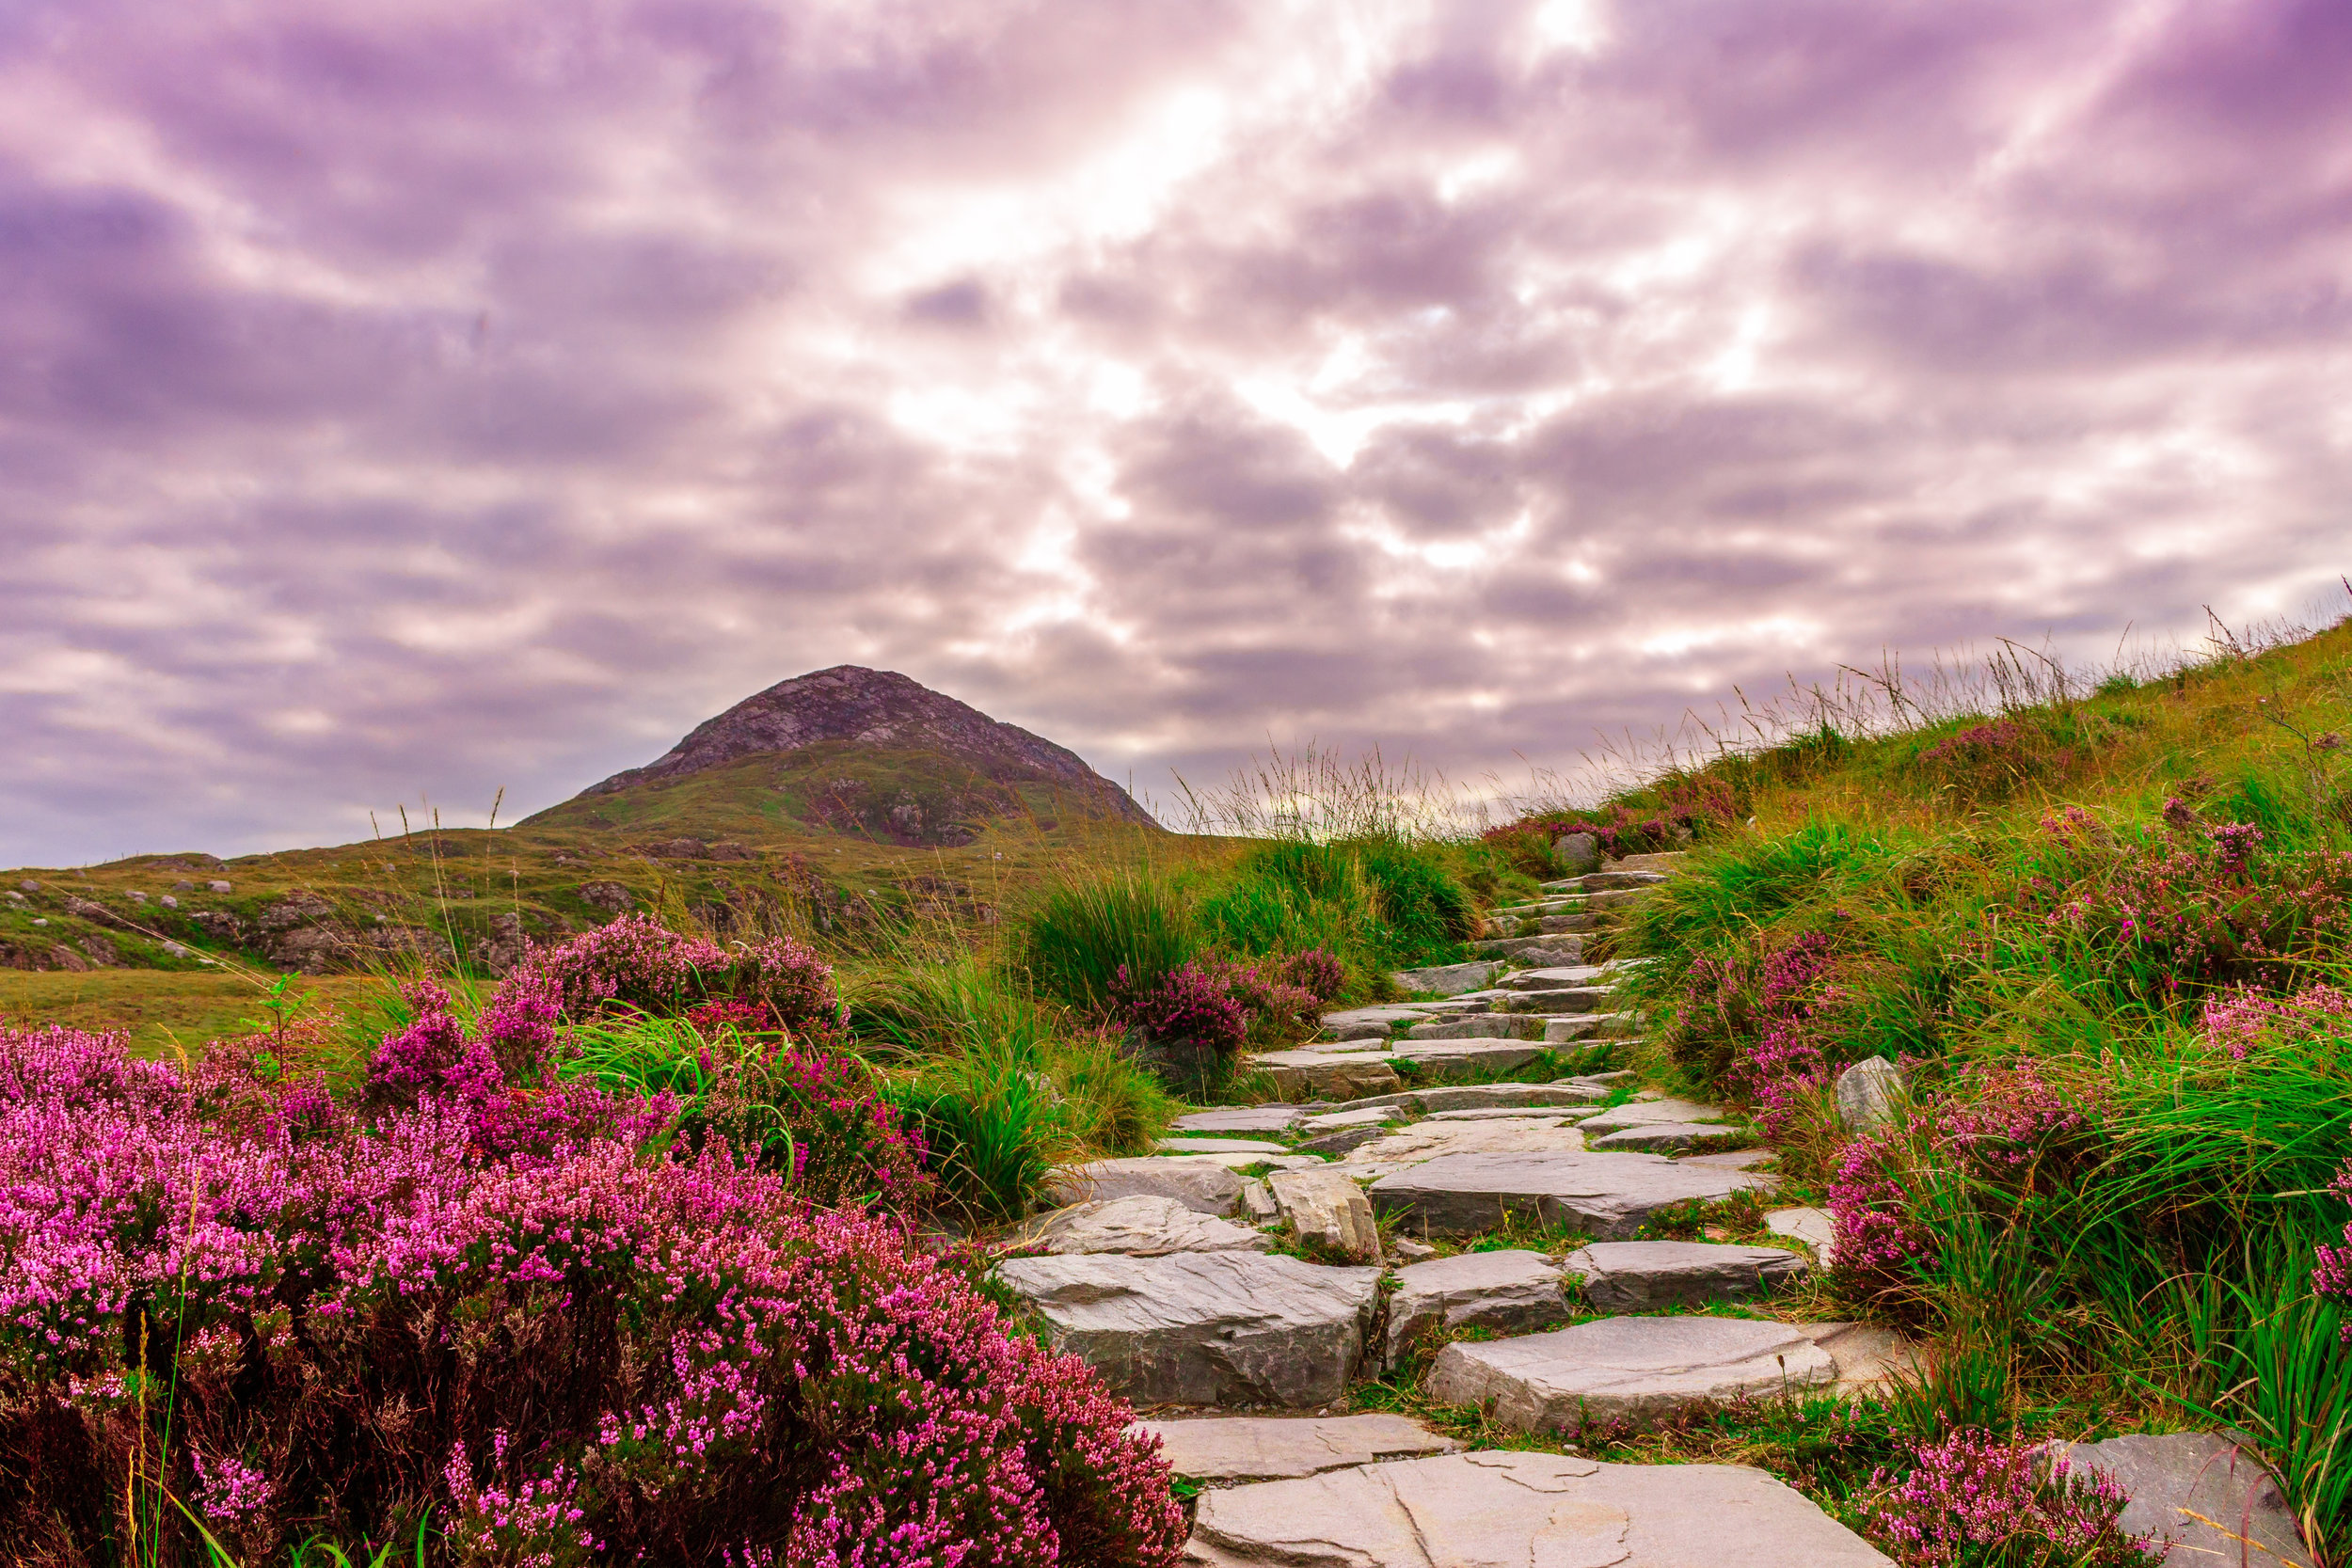 Canva - Ireland, National Park, Hiking, Away, Steinweg, Stones.jpg